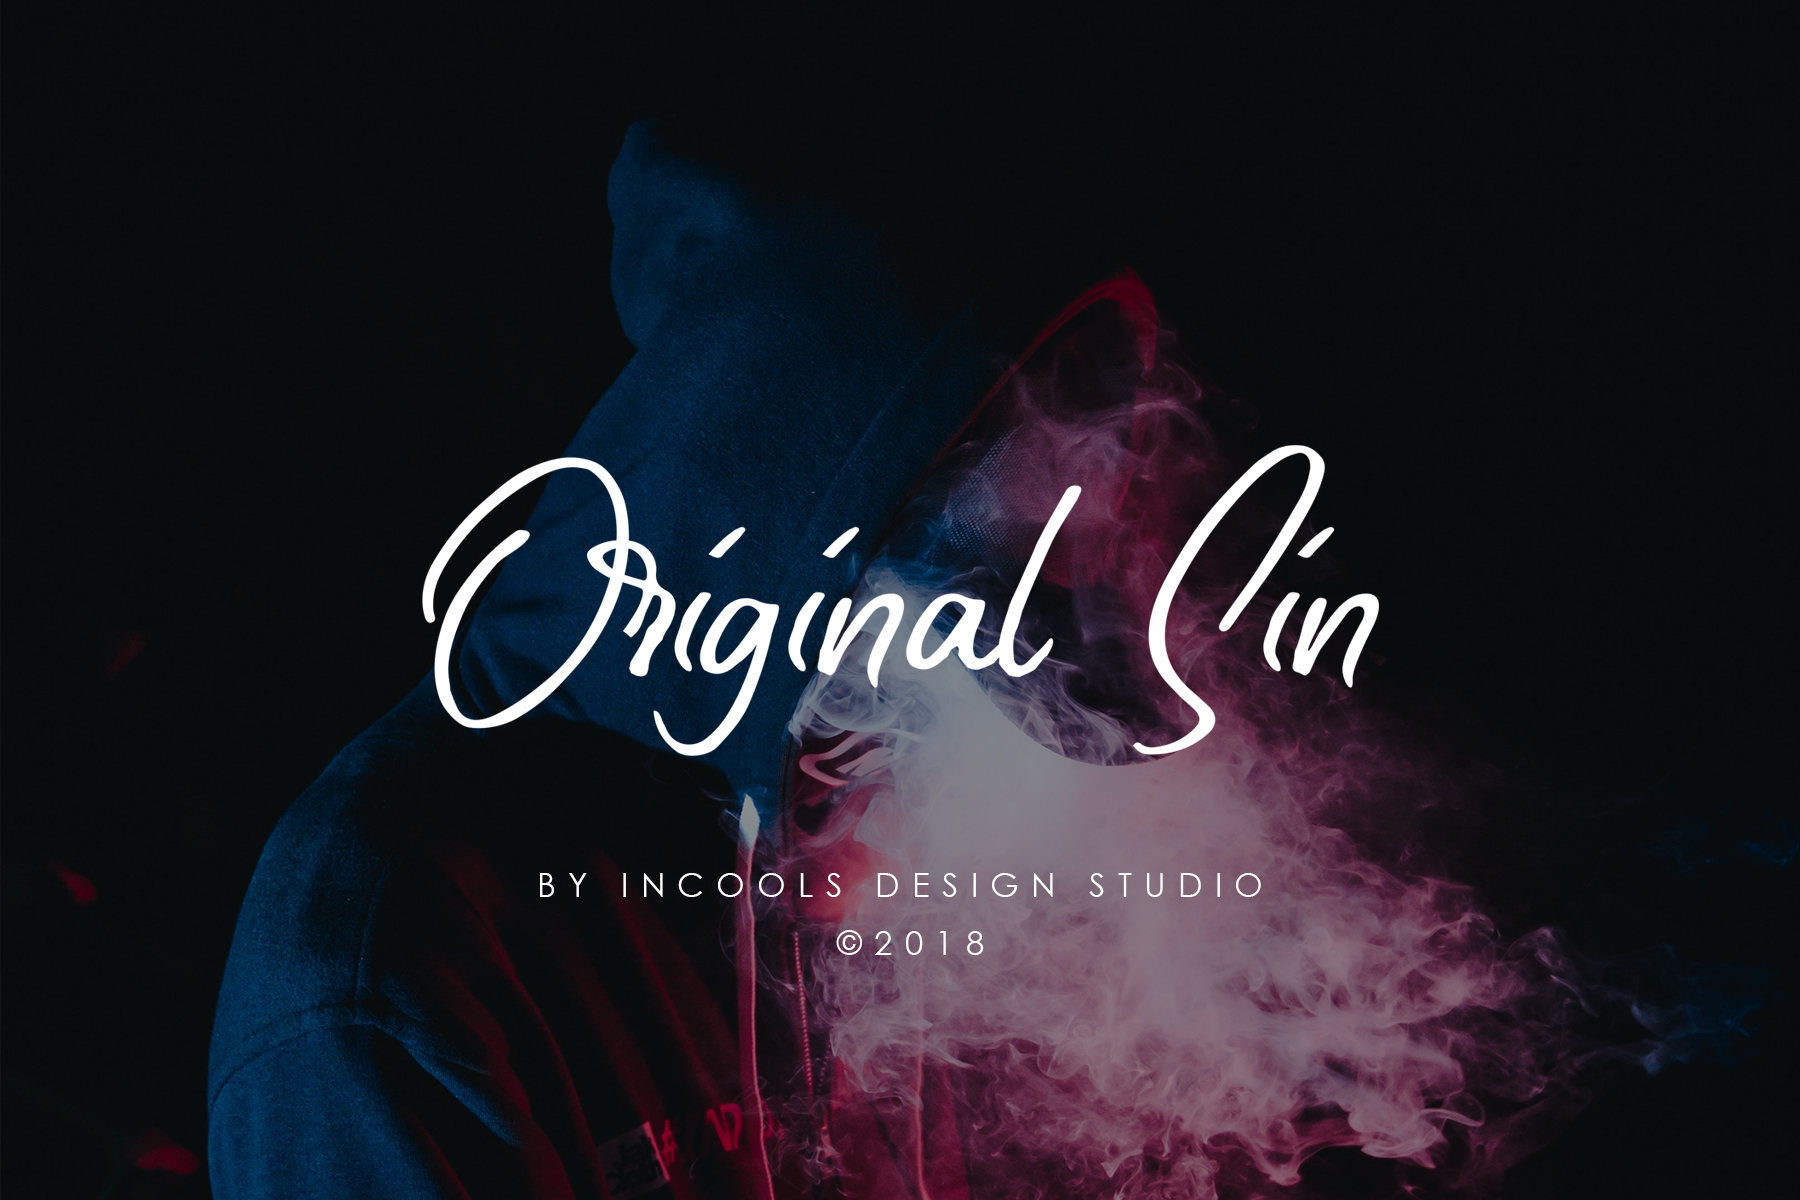 Original Sin Script & Handwritten Font By Incools Design Studio